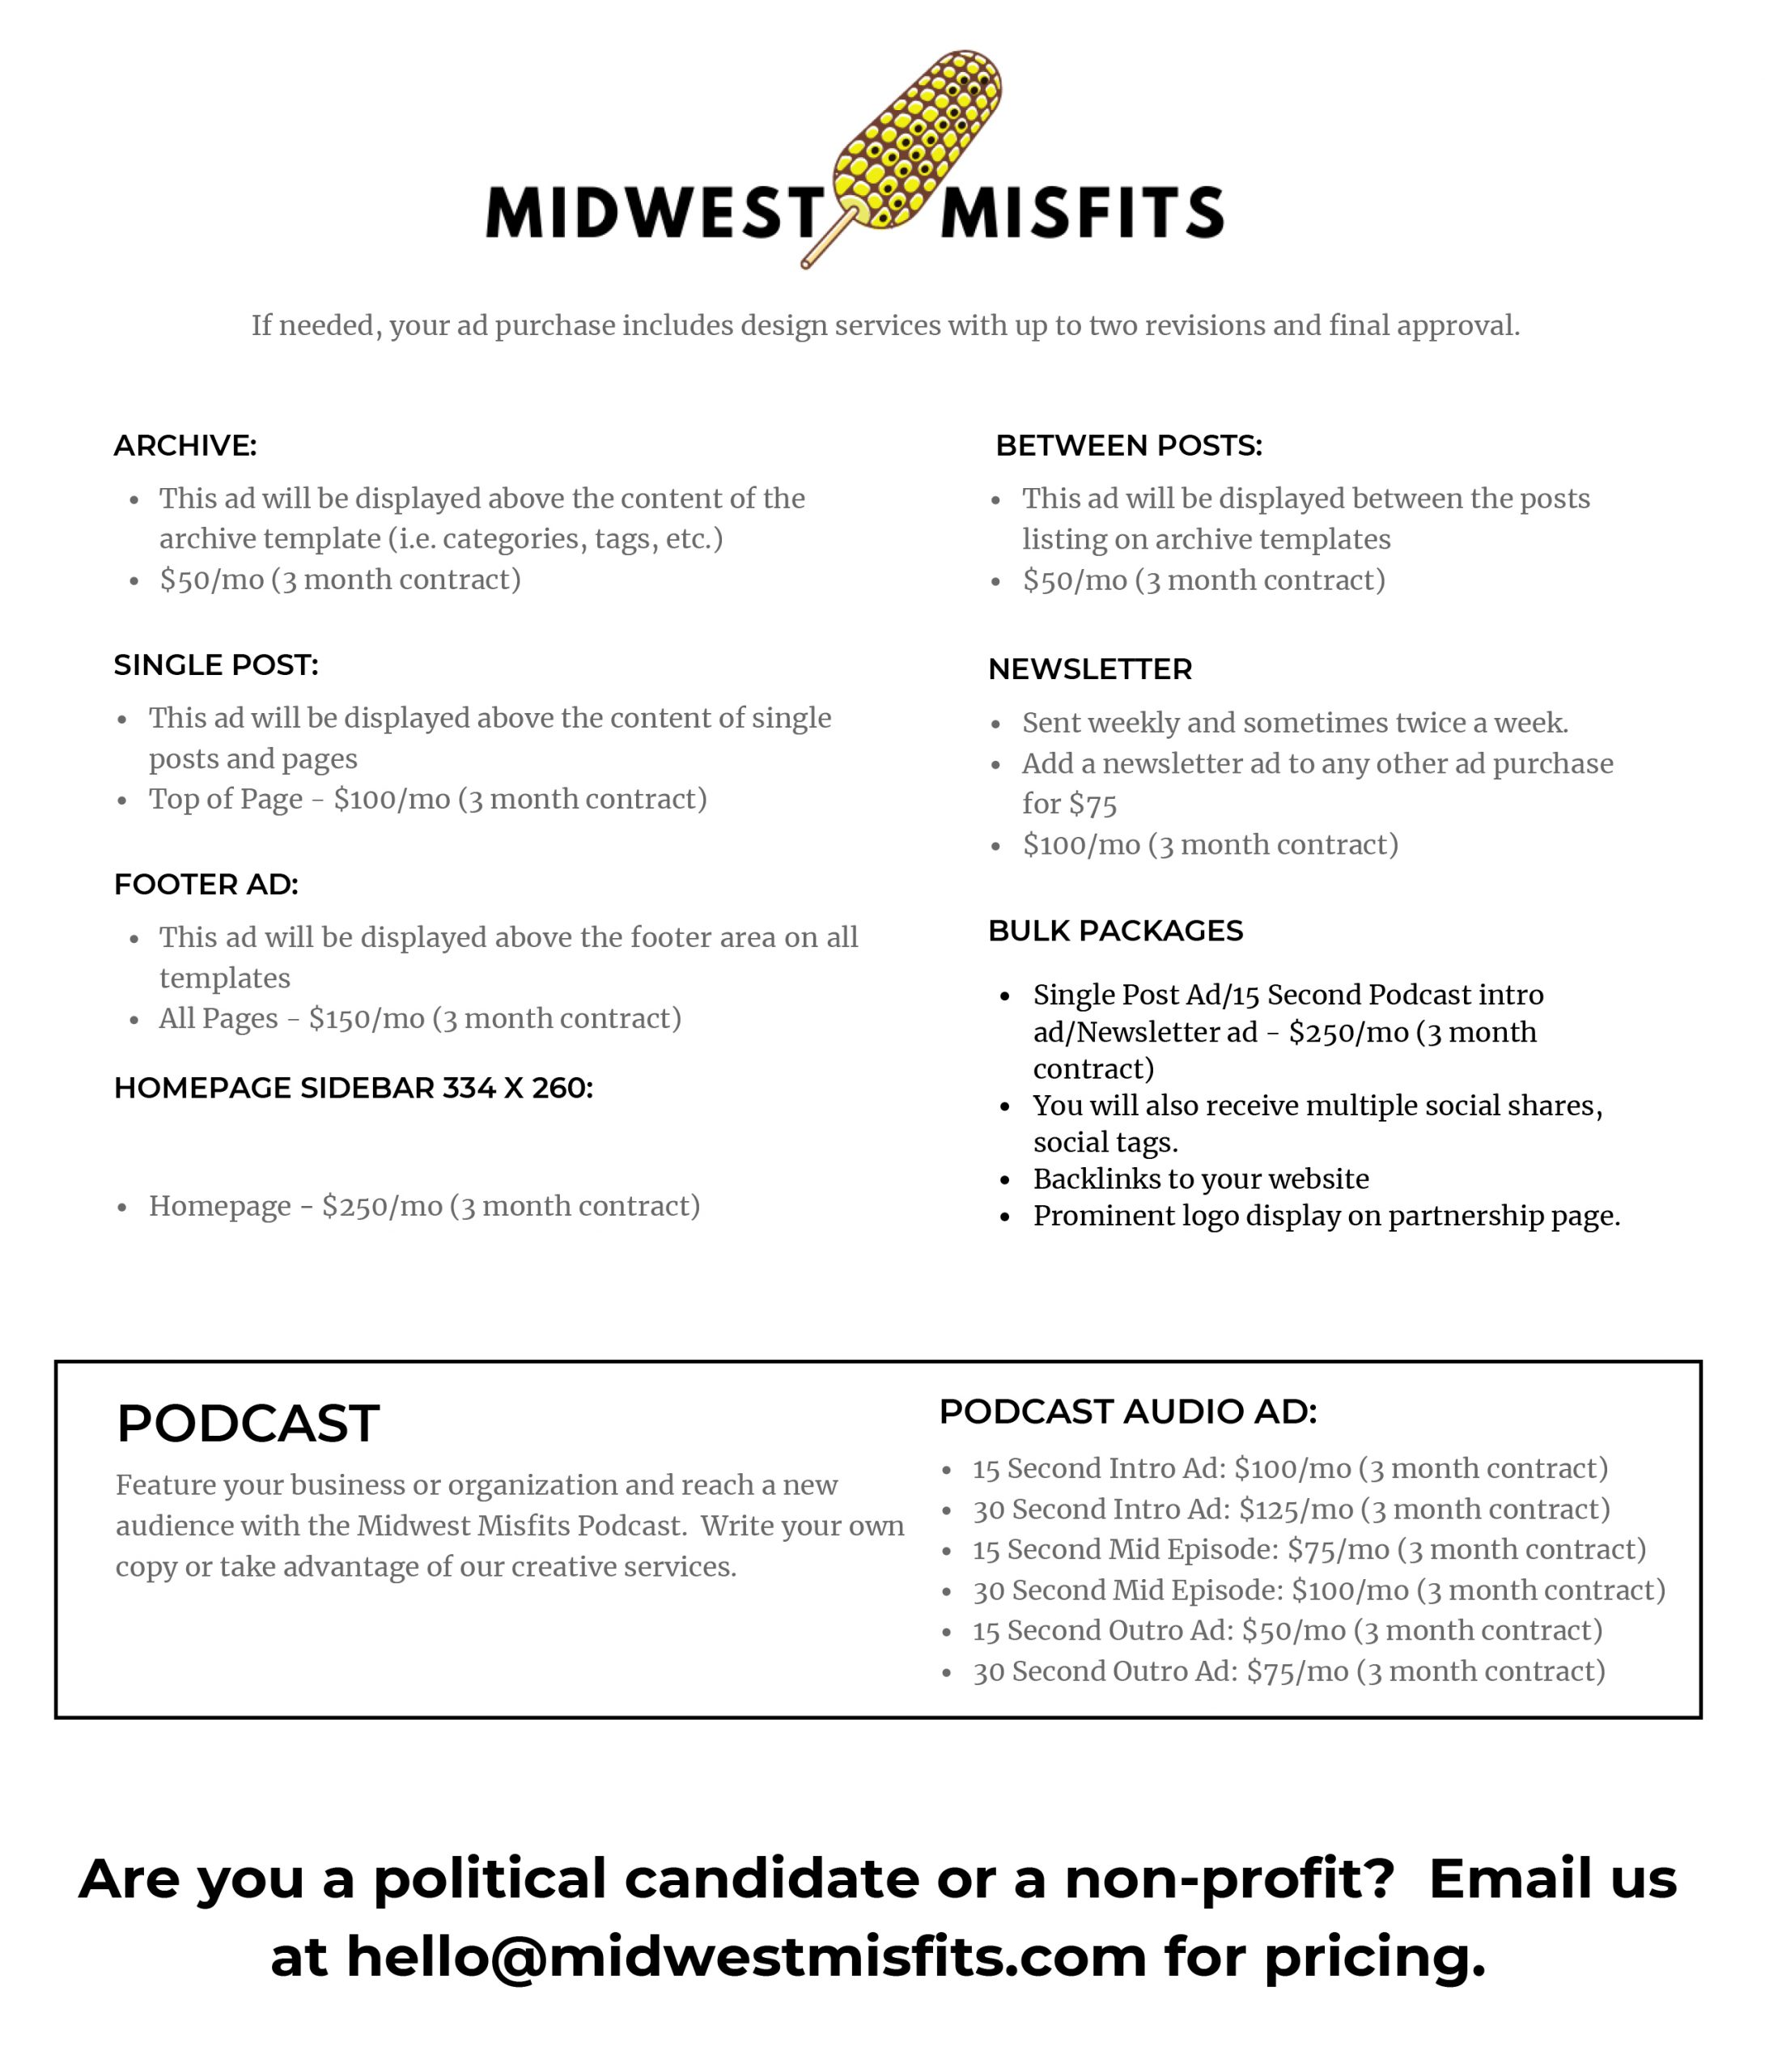 Midwest Misfits Advertising